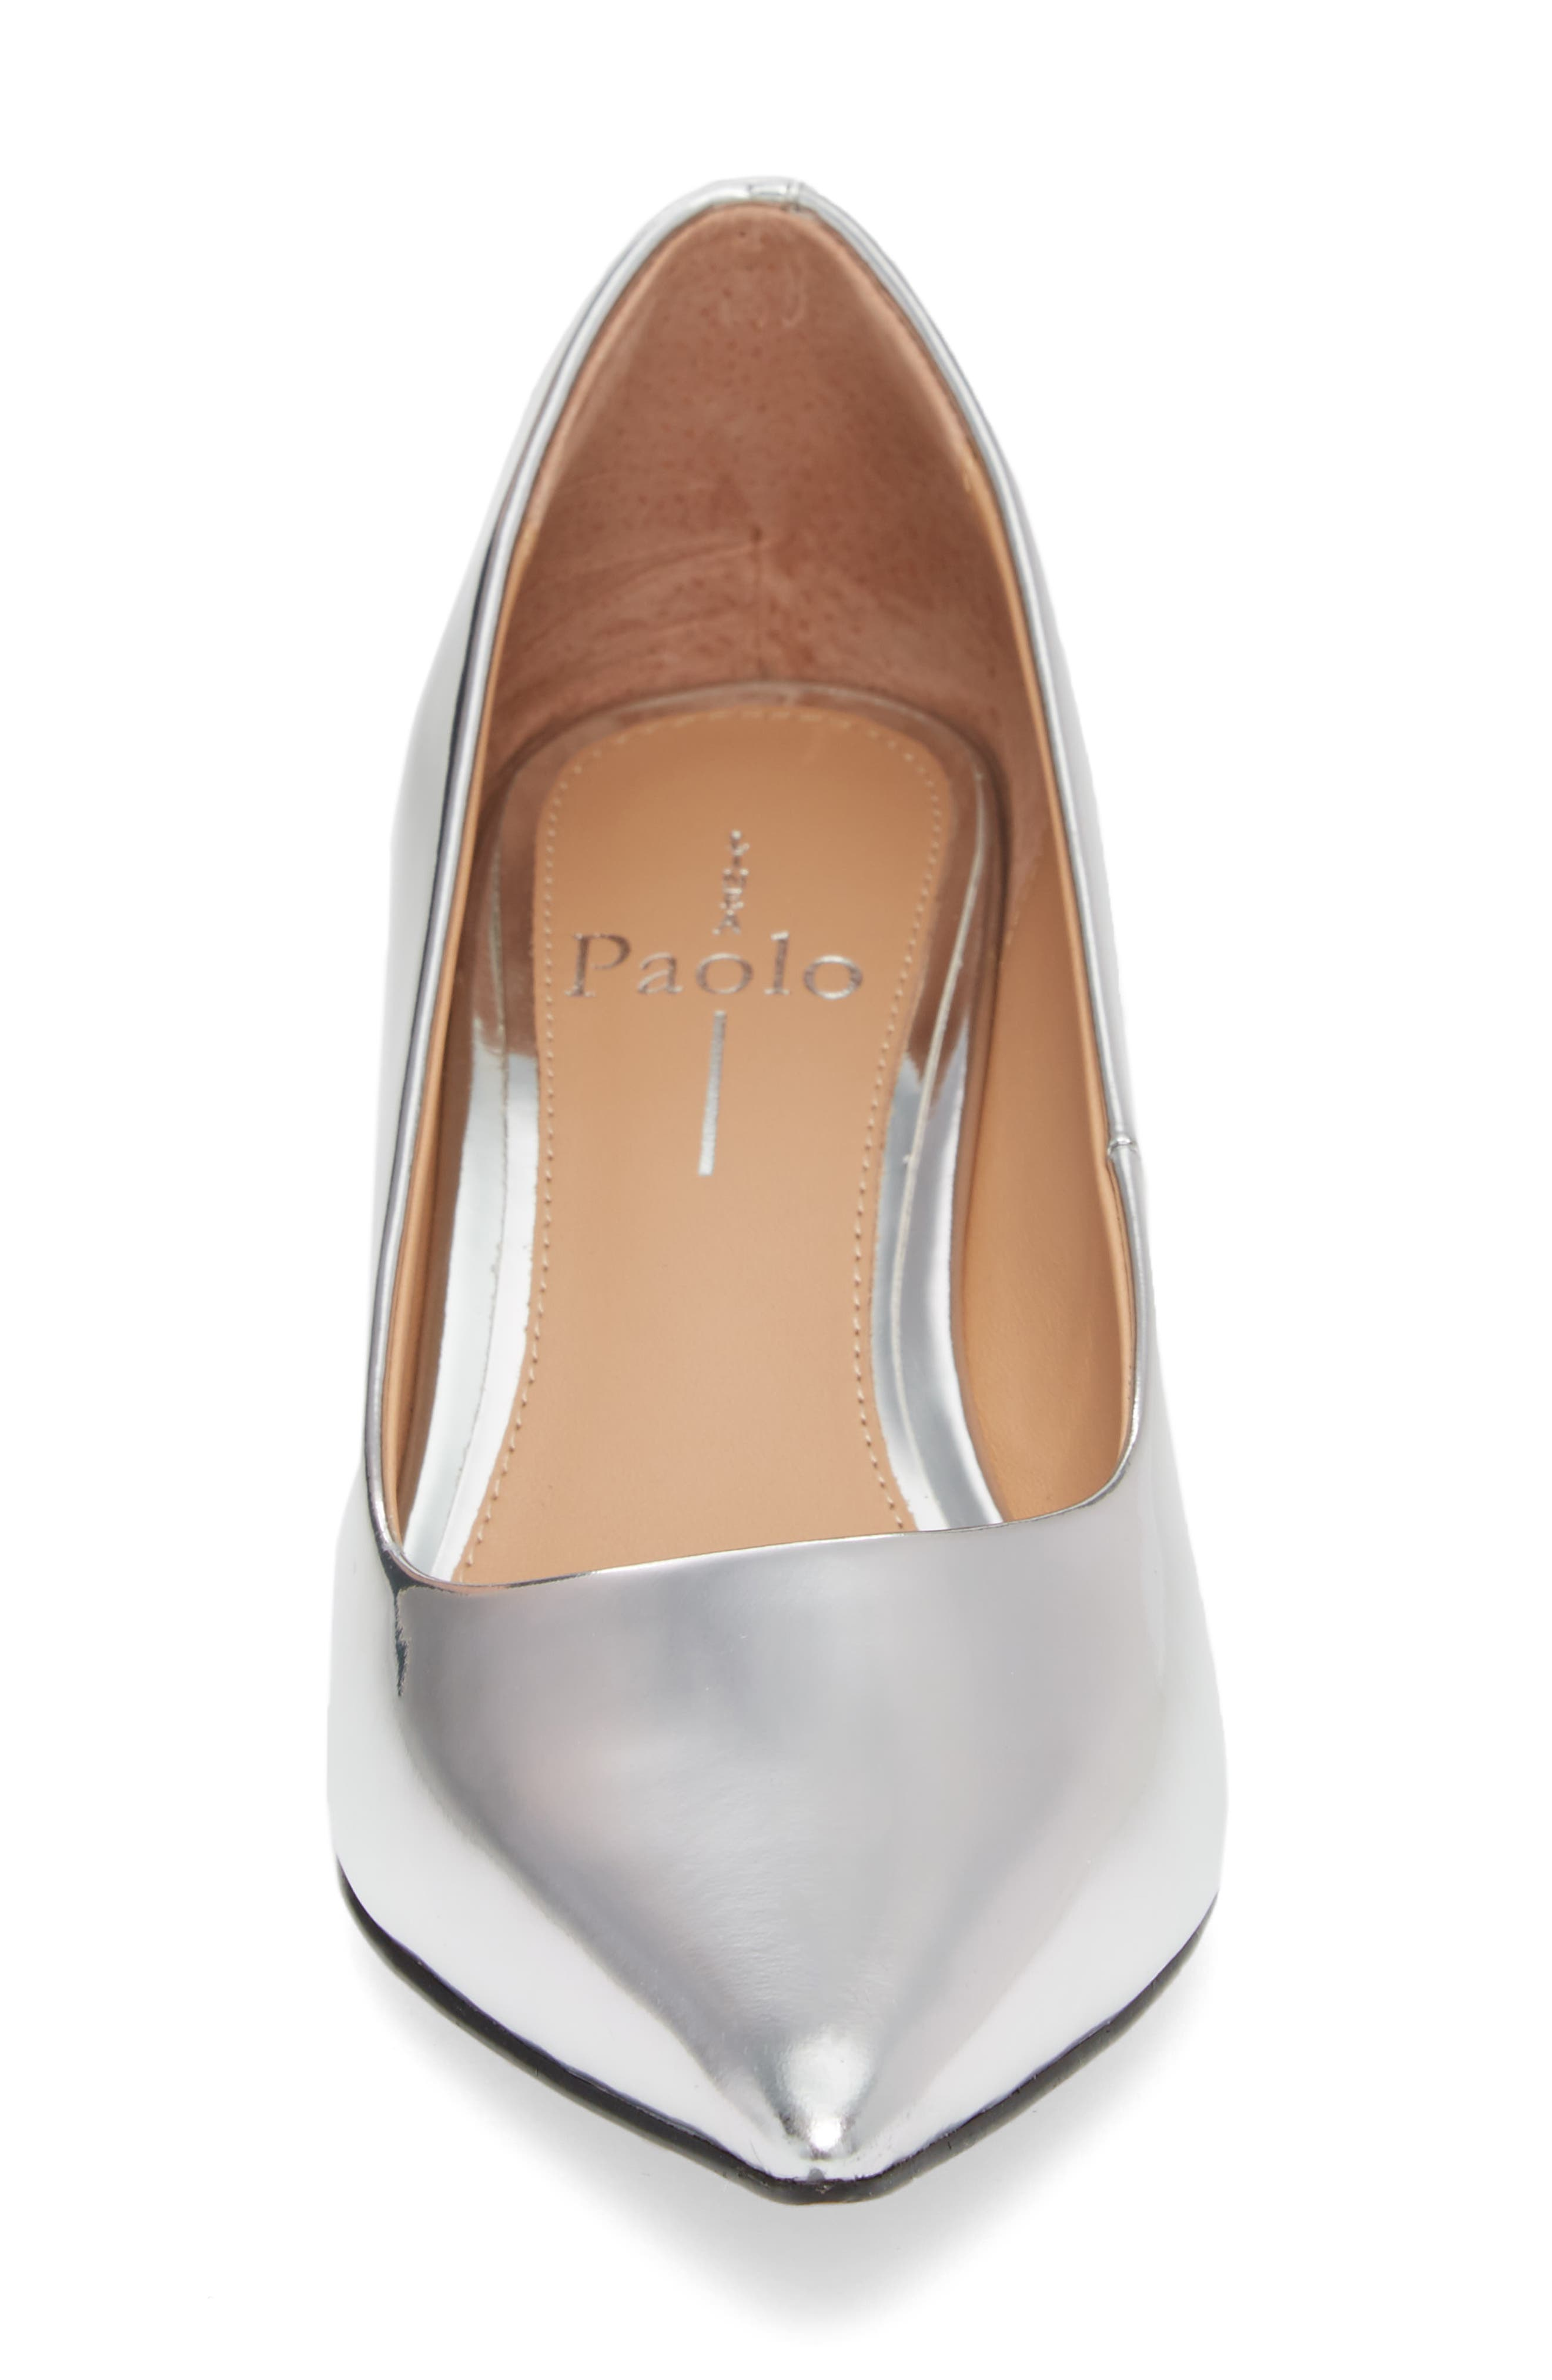 Petra Pointy Toe Pump,                             Alternate thumbnail 4, color,                             Silver Leather